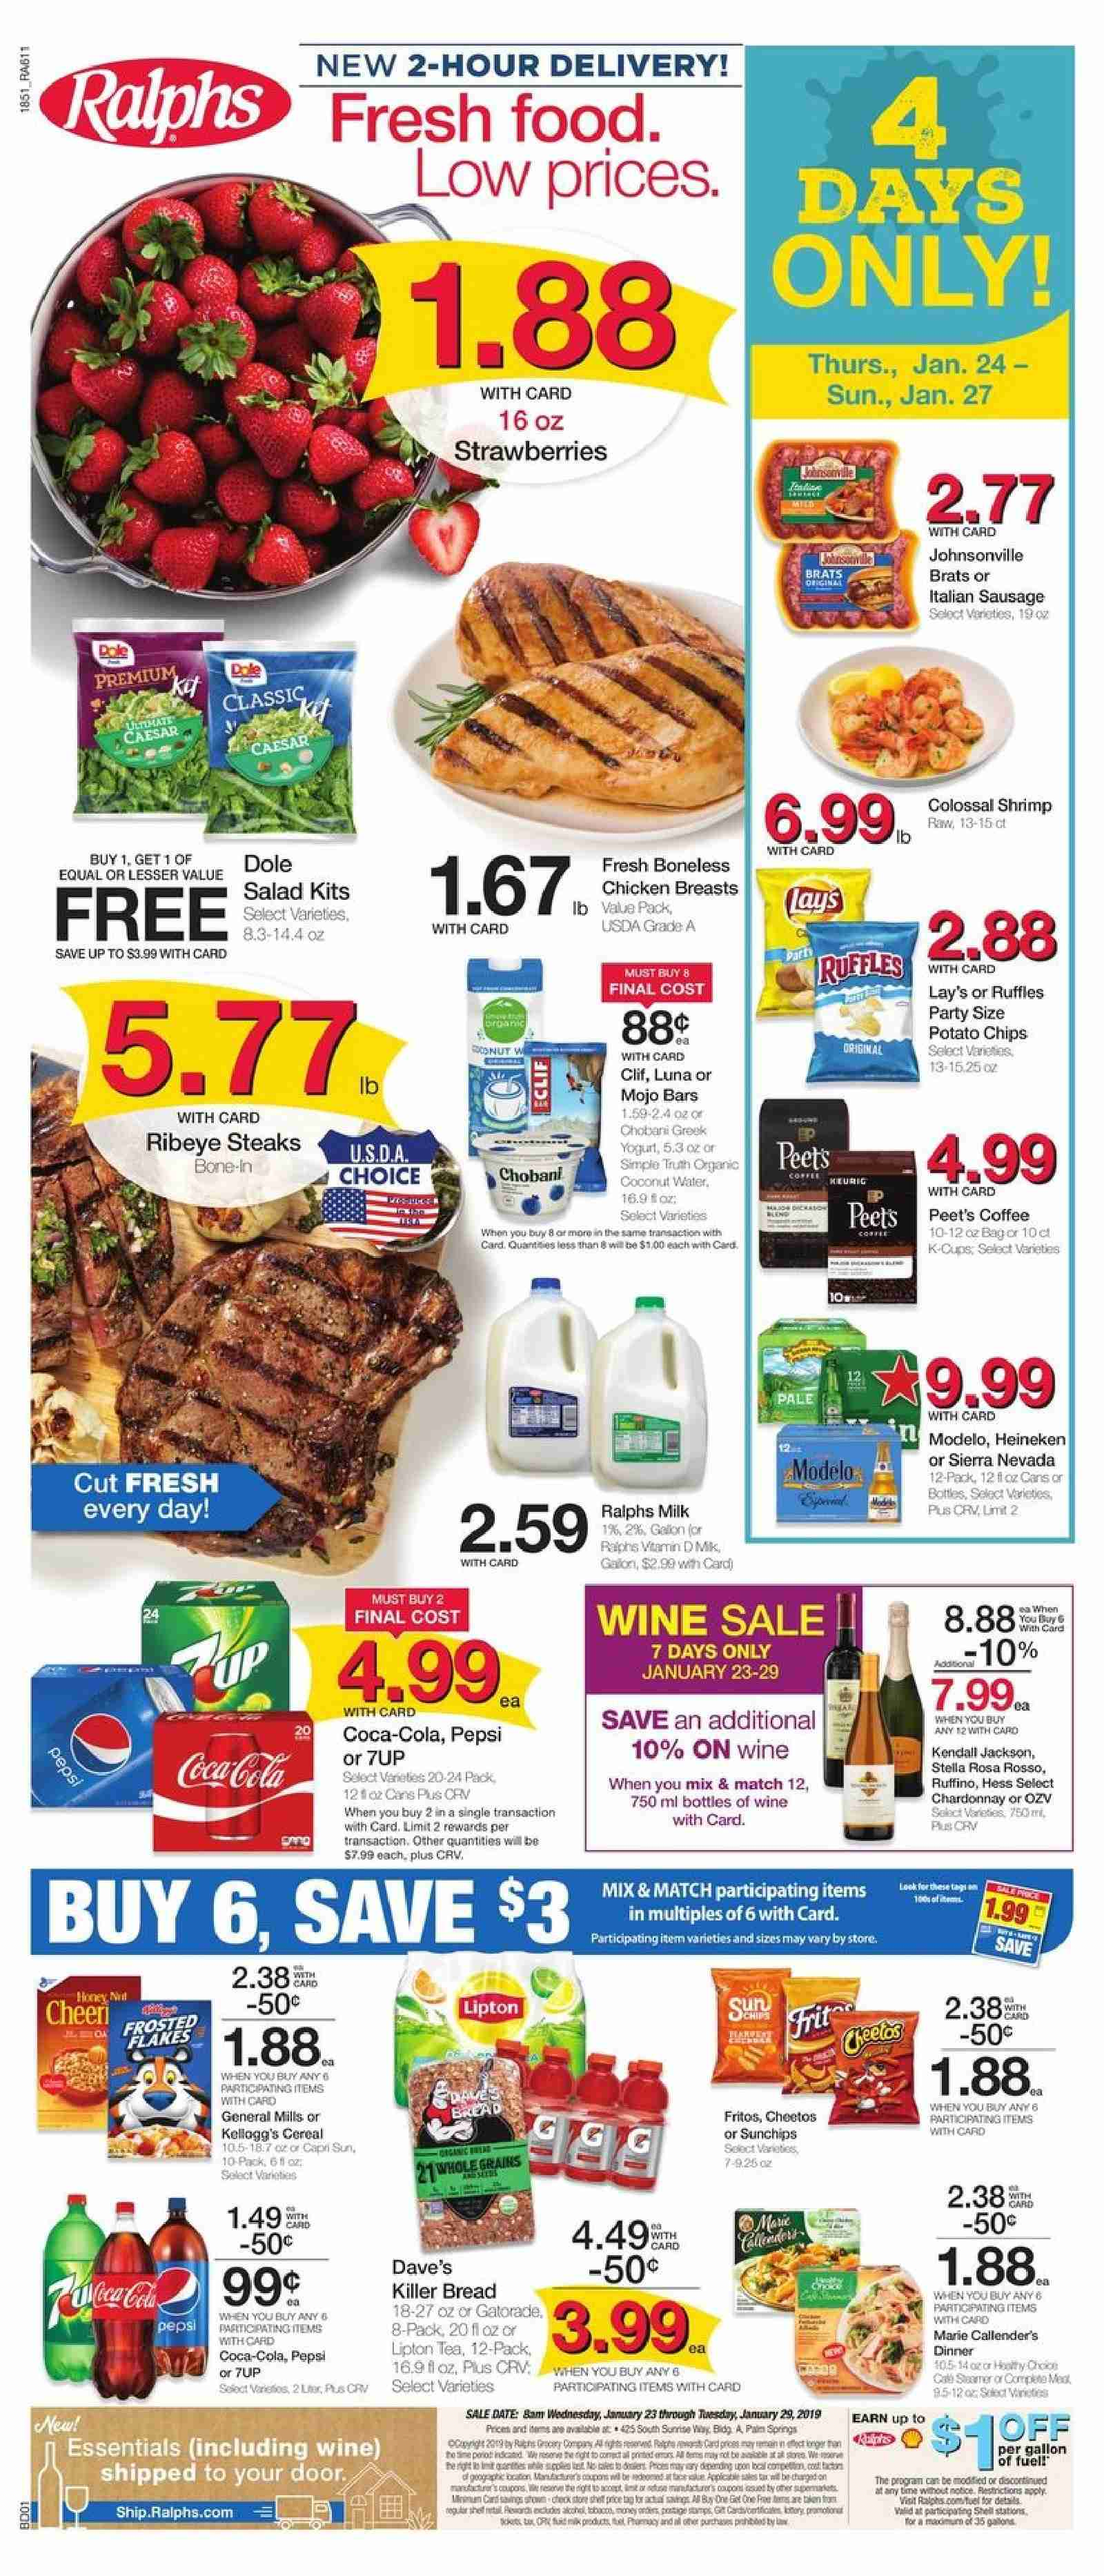 Ralphs Flyer  - 01.23.2019 - 01.29.2019. Page 1.